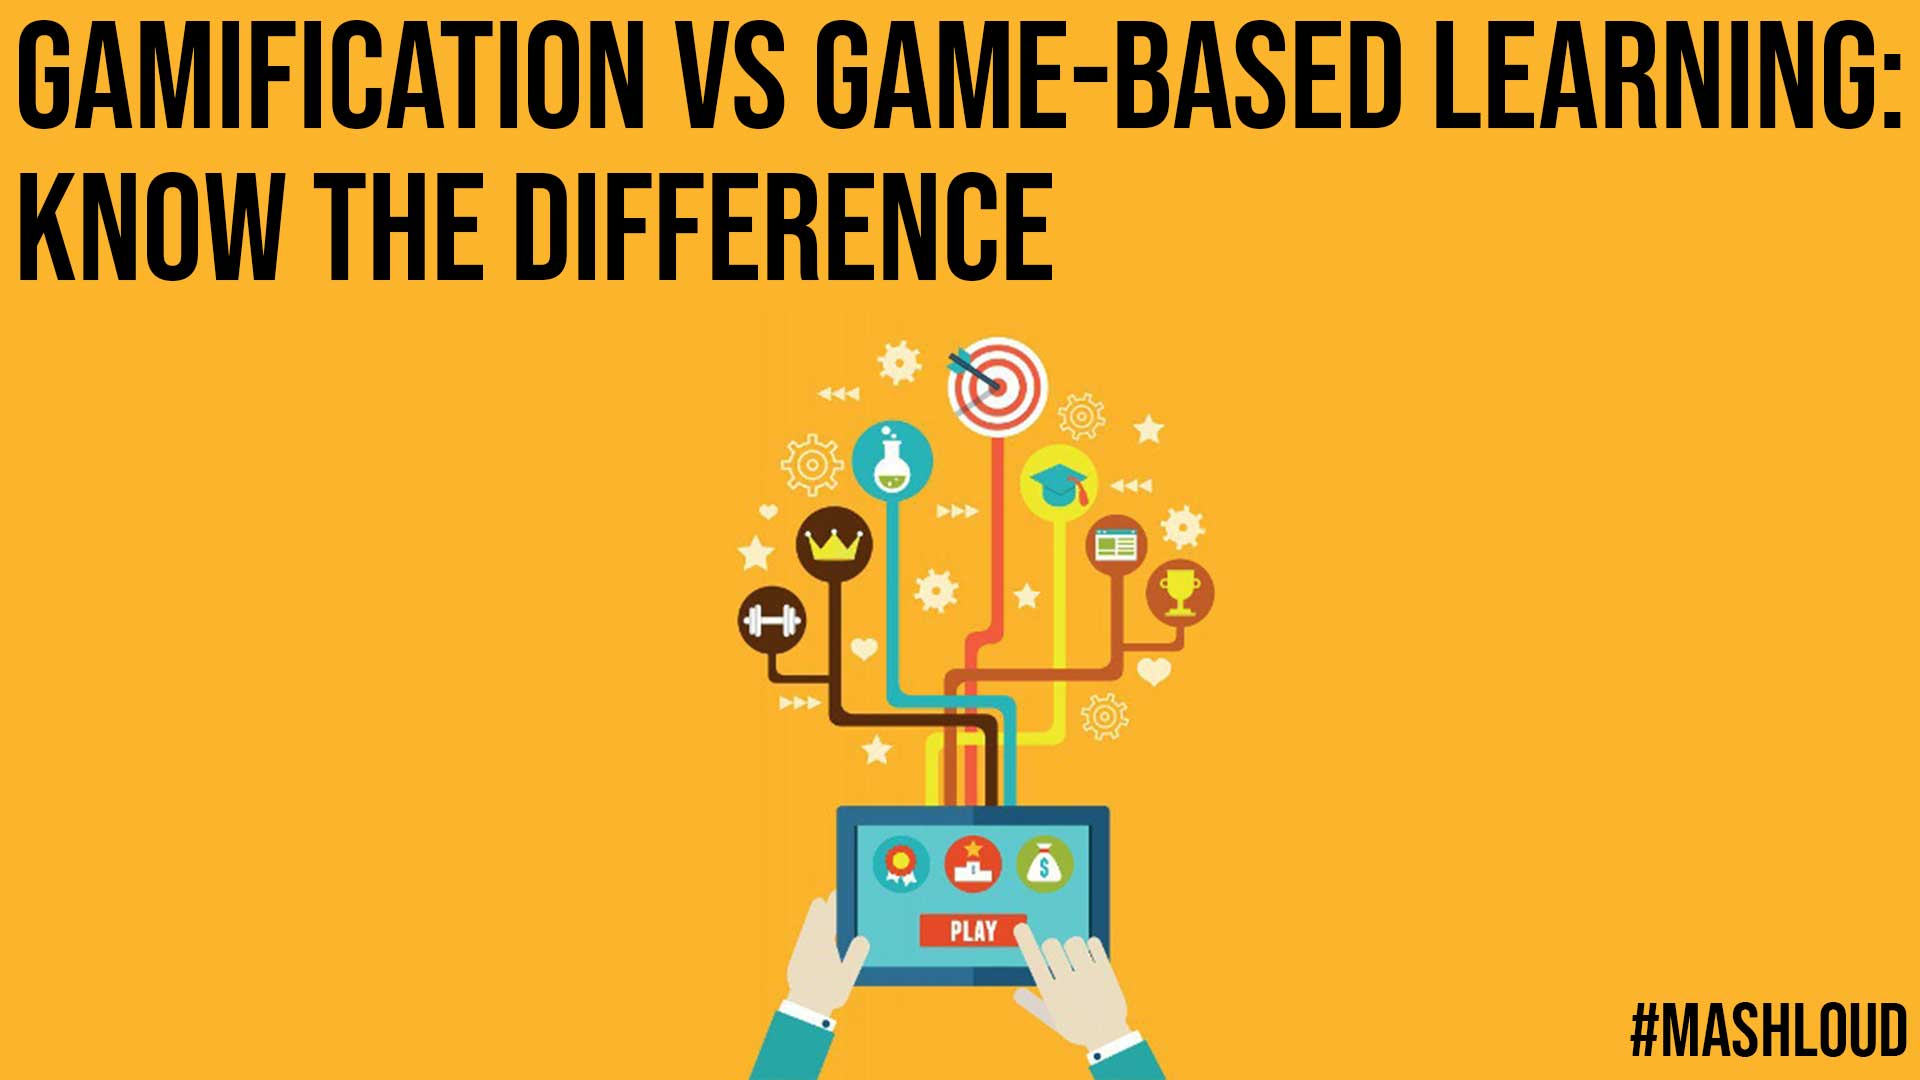 Gamification vs Game Based Learning Know the Difference